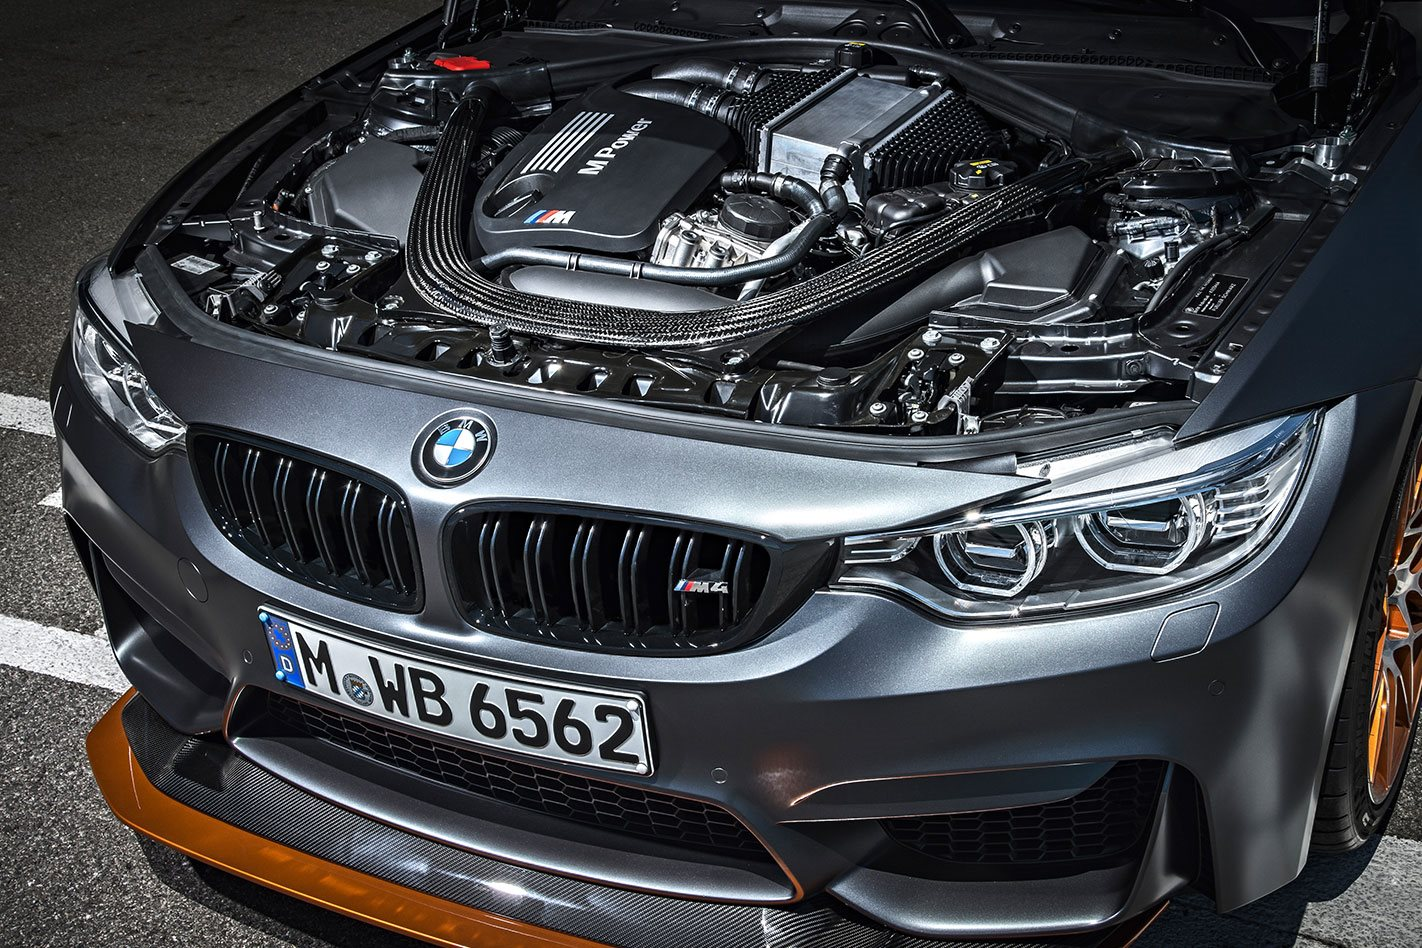 BMW M4 GTS engine